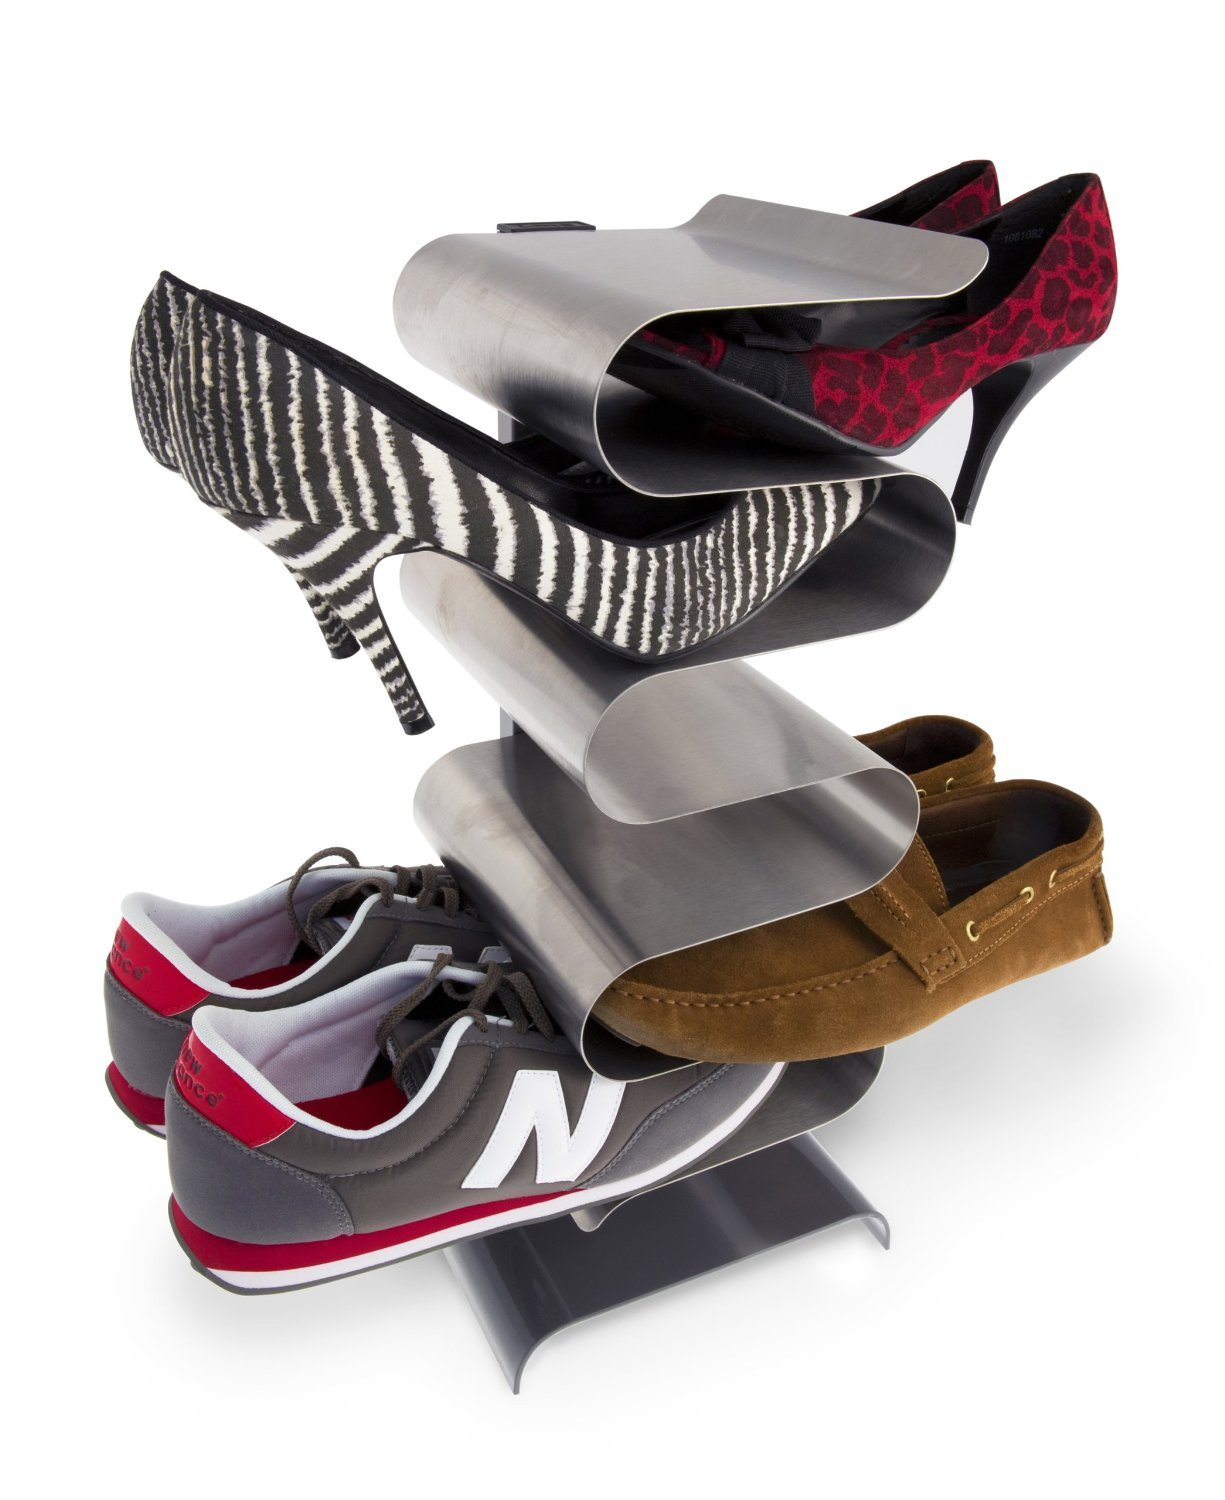 j-me Shoe Rack Nest Free-standing Shoe Shelf Shoe Holder (Free Standing)